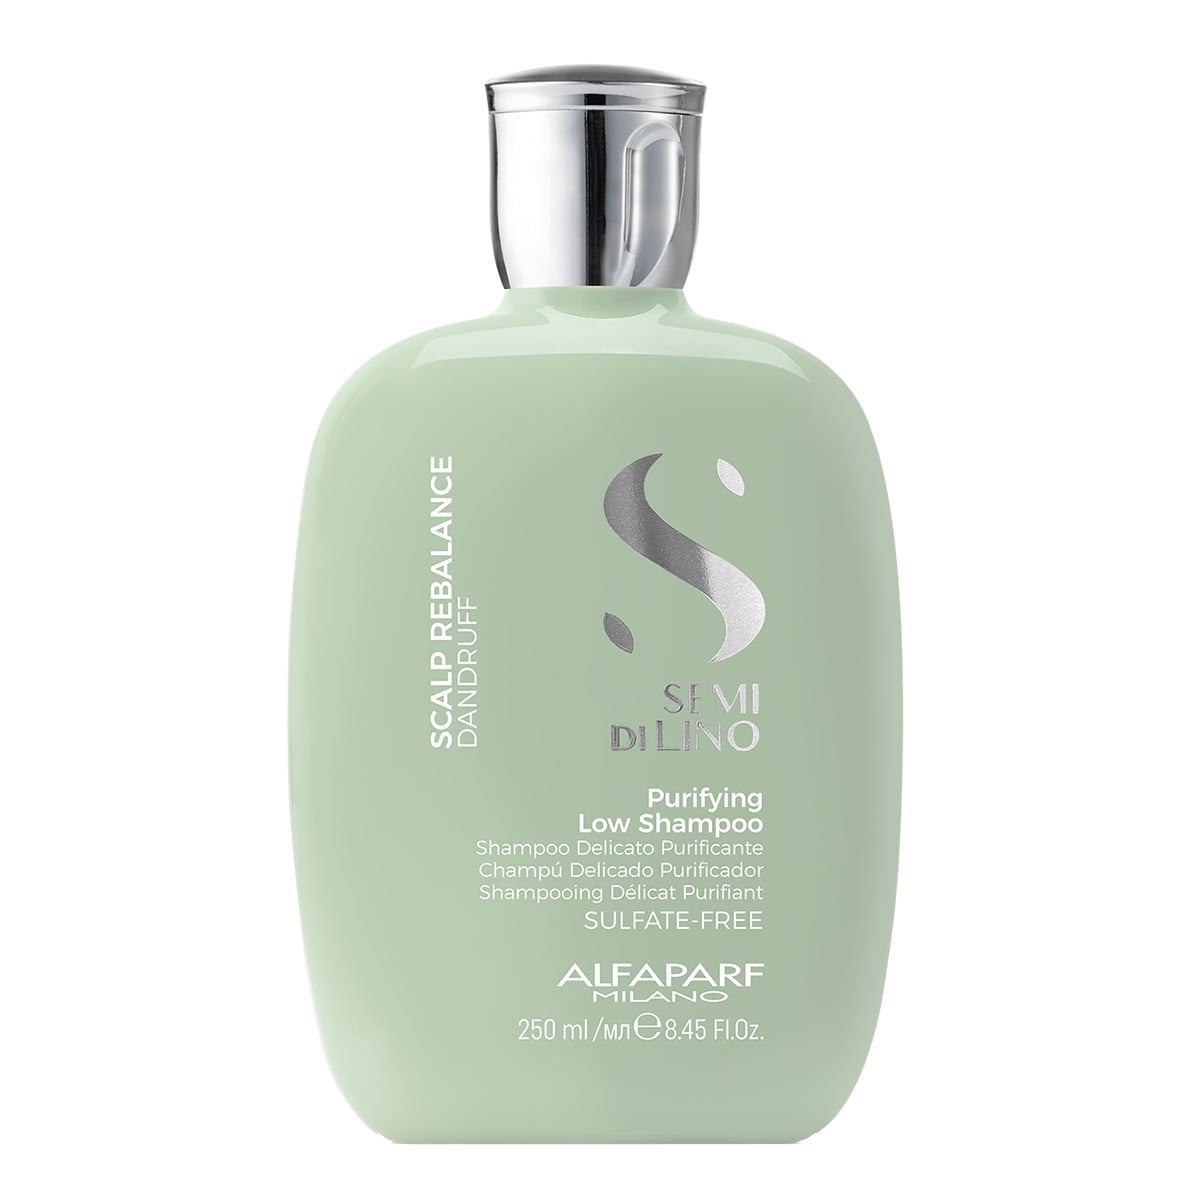 Semi Di Lino - Purifying Low Shampoo 250ml - Alfaparf Scalp